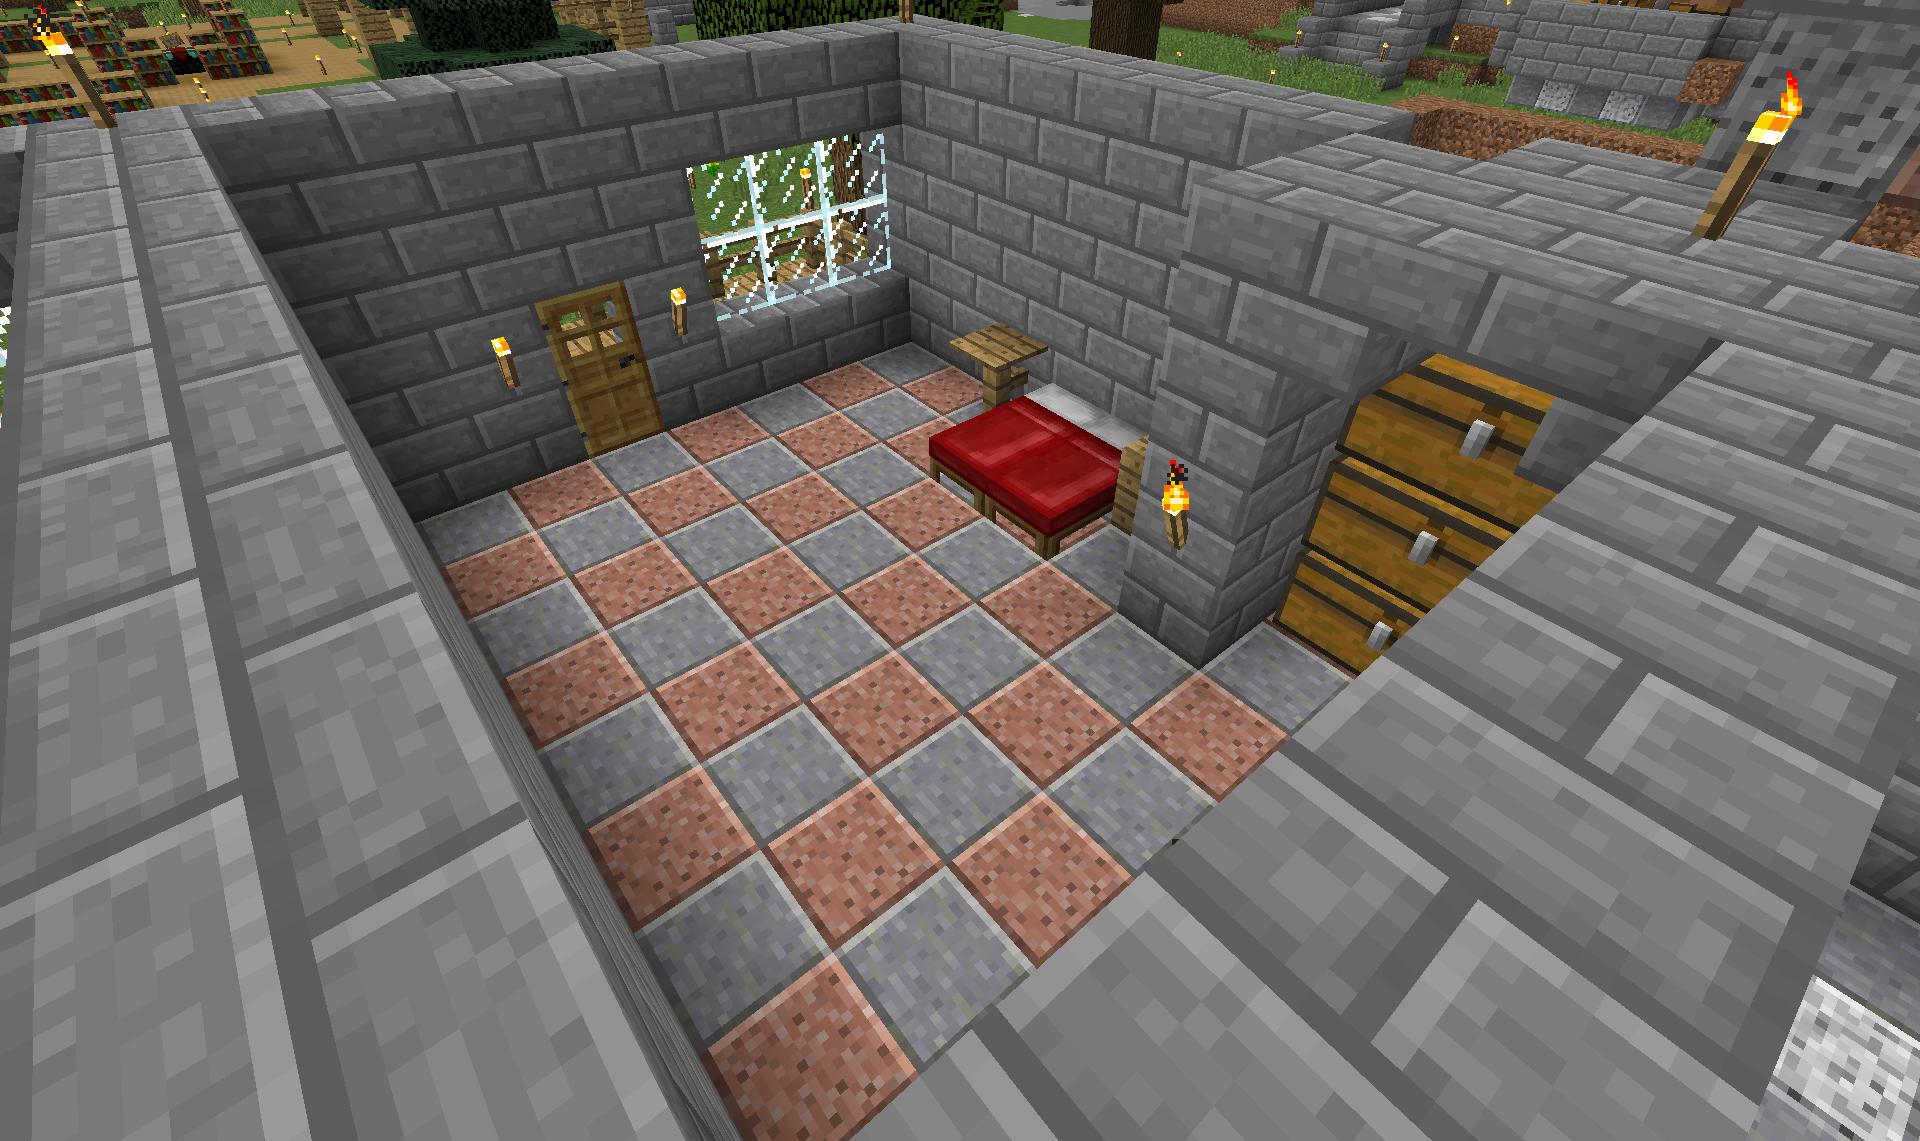 So I've made rooms that all are shaped the same with a specific height and all that and gave it some basic furniture.